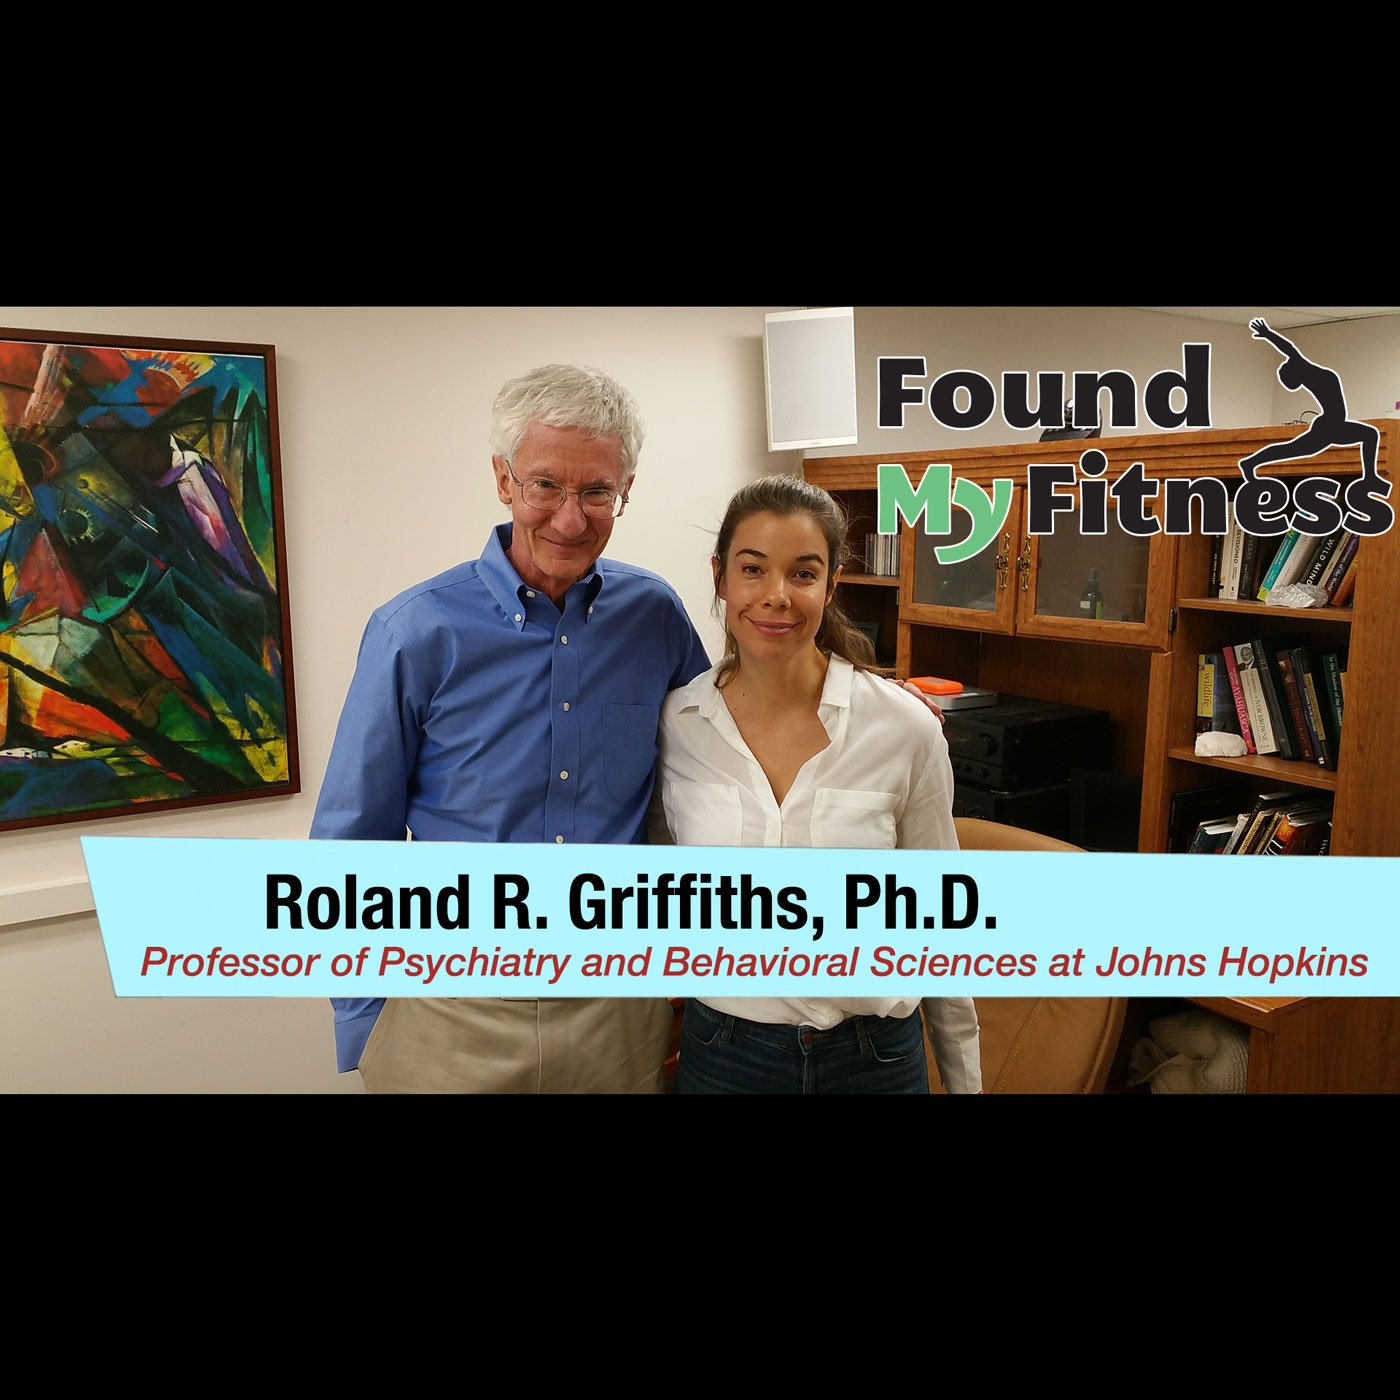 Roland Griffiths, Ph.D. on Psilocybin, Psychedelic Therapies & Mystical Experiences